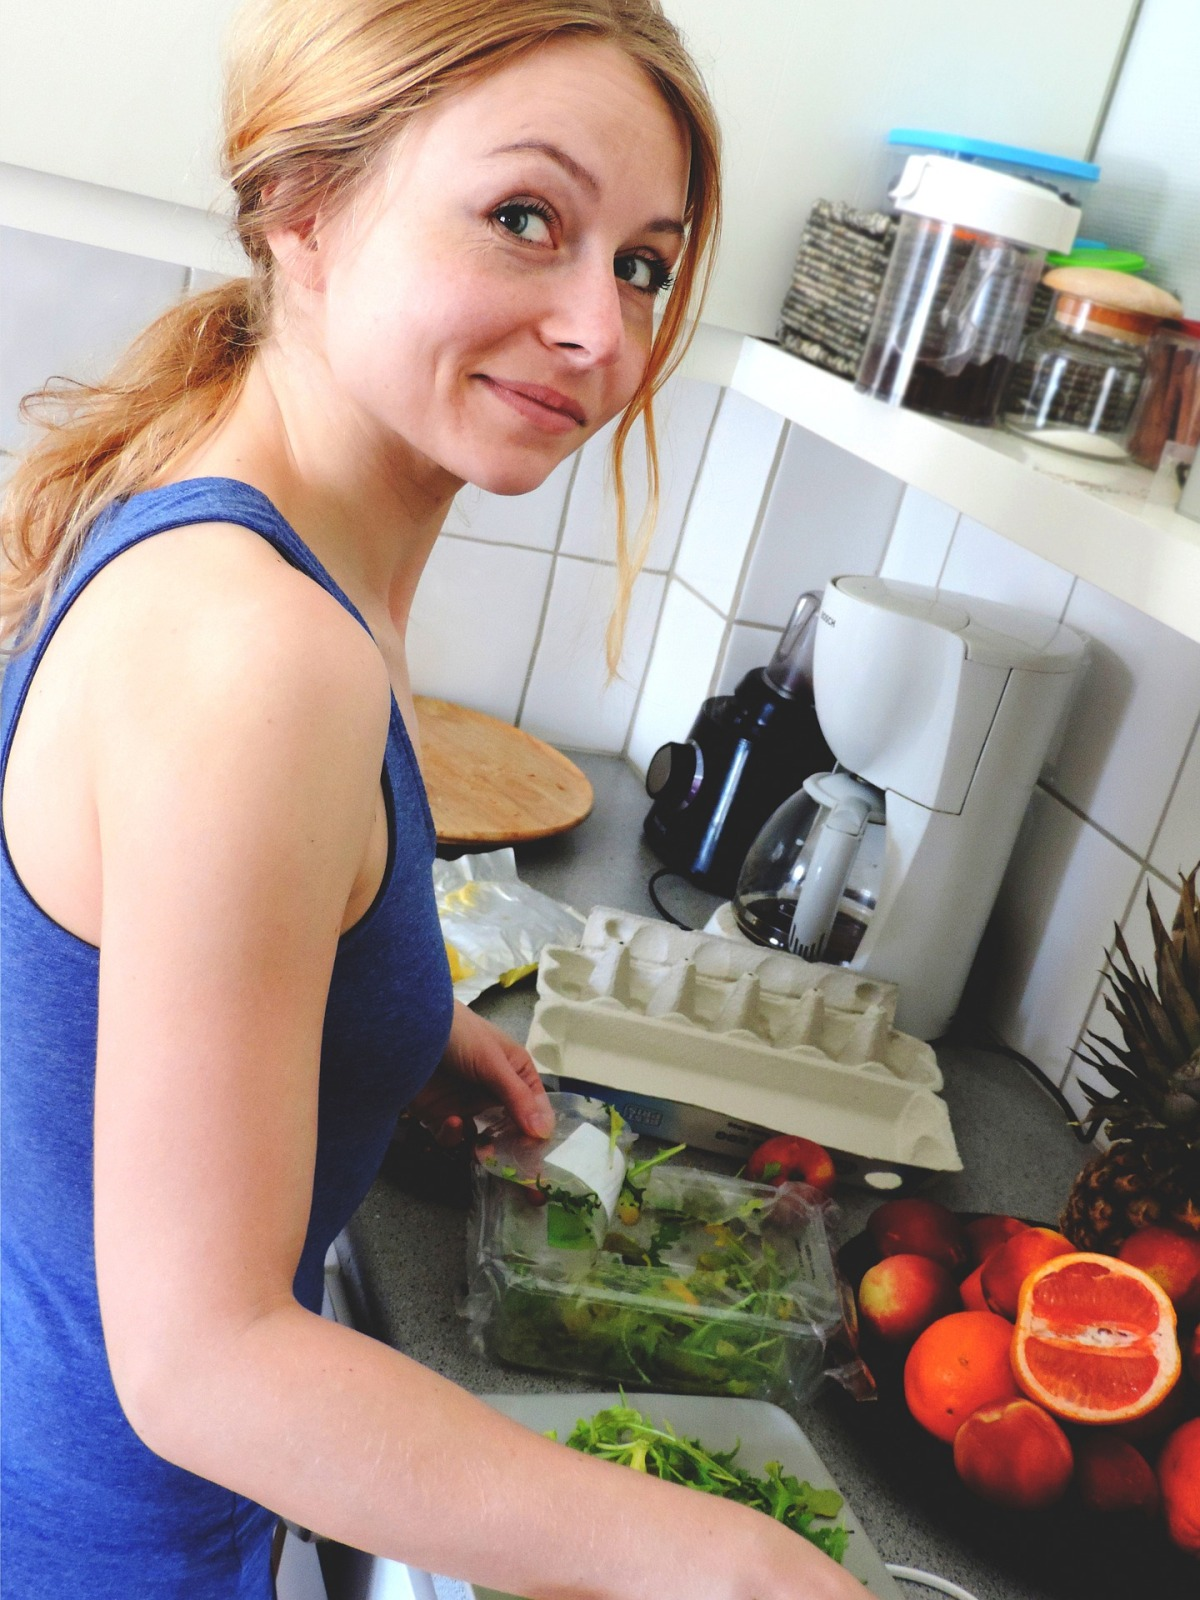 5 Tips To Make Meal PlanningEasy